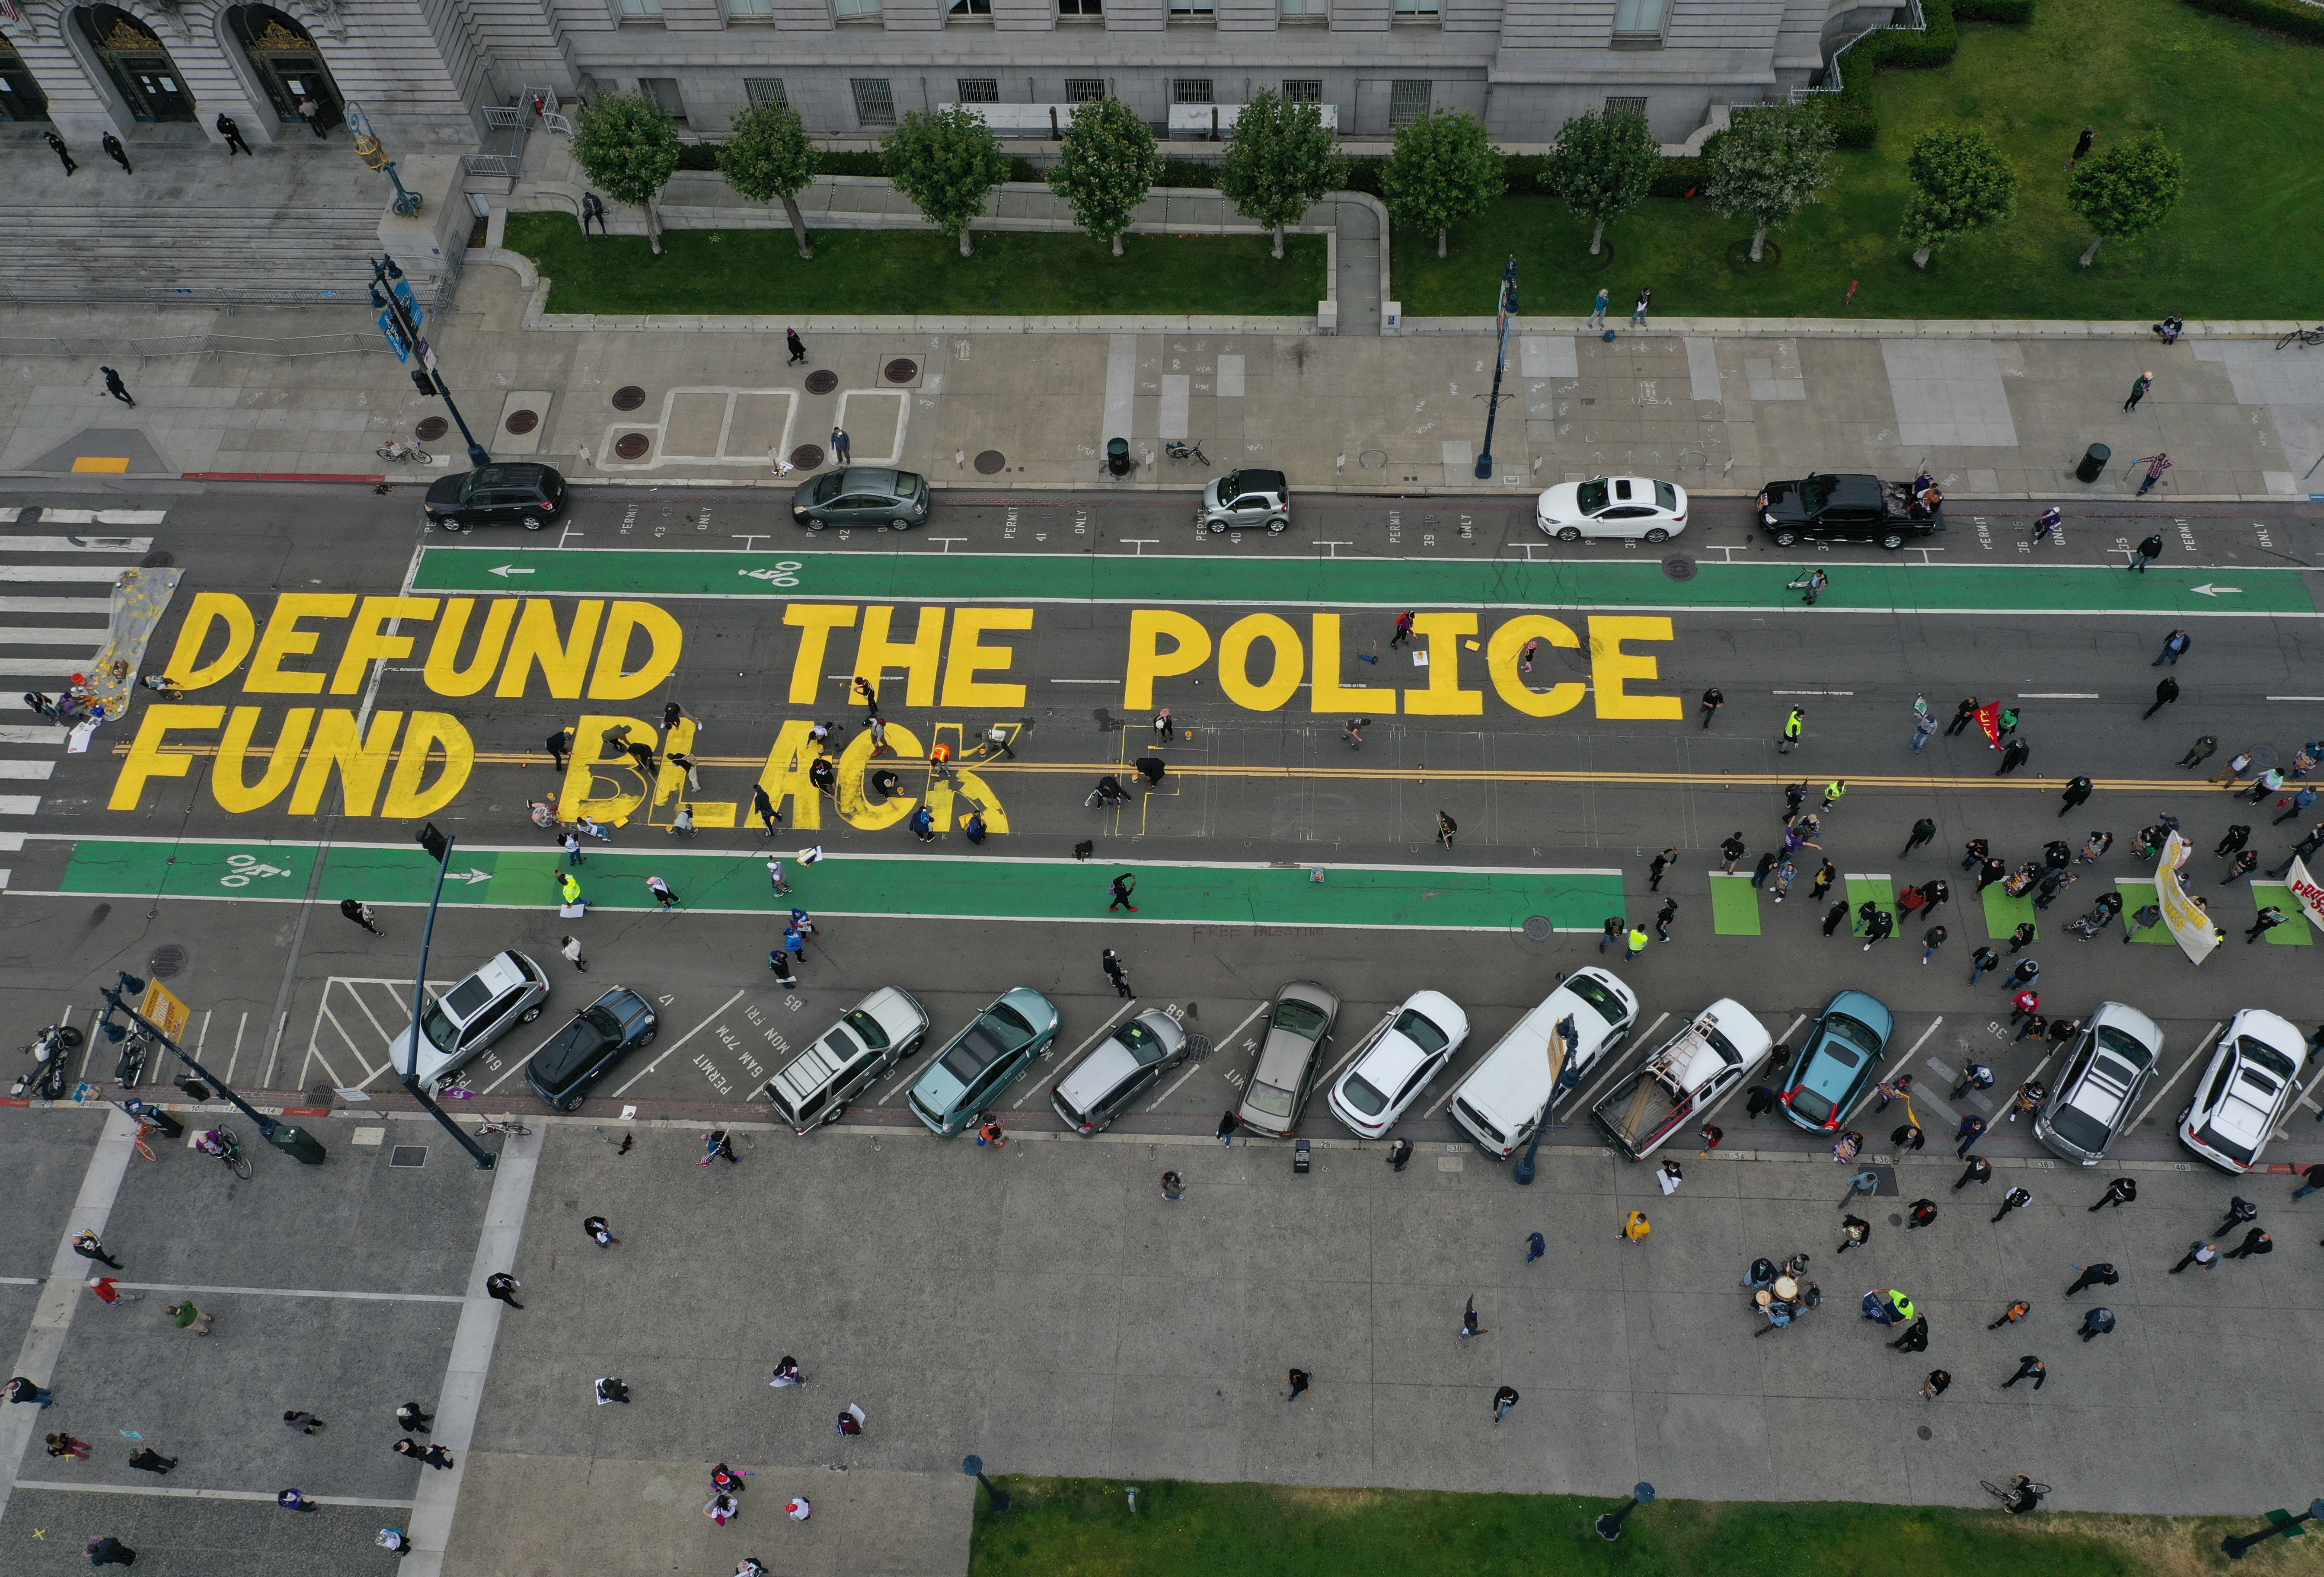 SAN FRANCISCO, CALIFORNIA - JULY 20: Protesters paint a mural that says 'defund the police' during a Strike For Black Lives demonstration outside of San Francisco City Hall on July 20, 2020 in San Francisco, California. The demonstration was part of the nationwide Strike for Black Lives effort which is calling for higher wages, better jobs, and Unions to help workers build economic power. (Justin Sullivan/Getty Images)